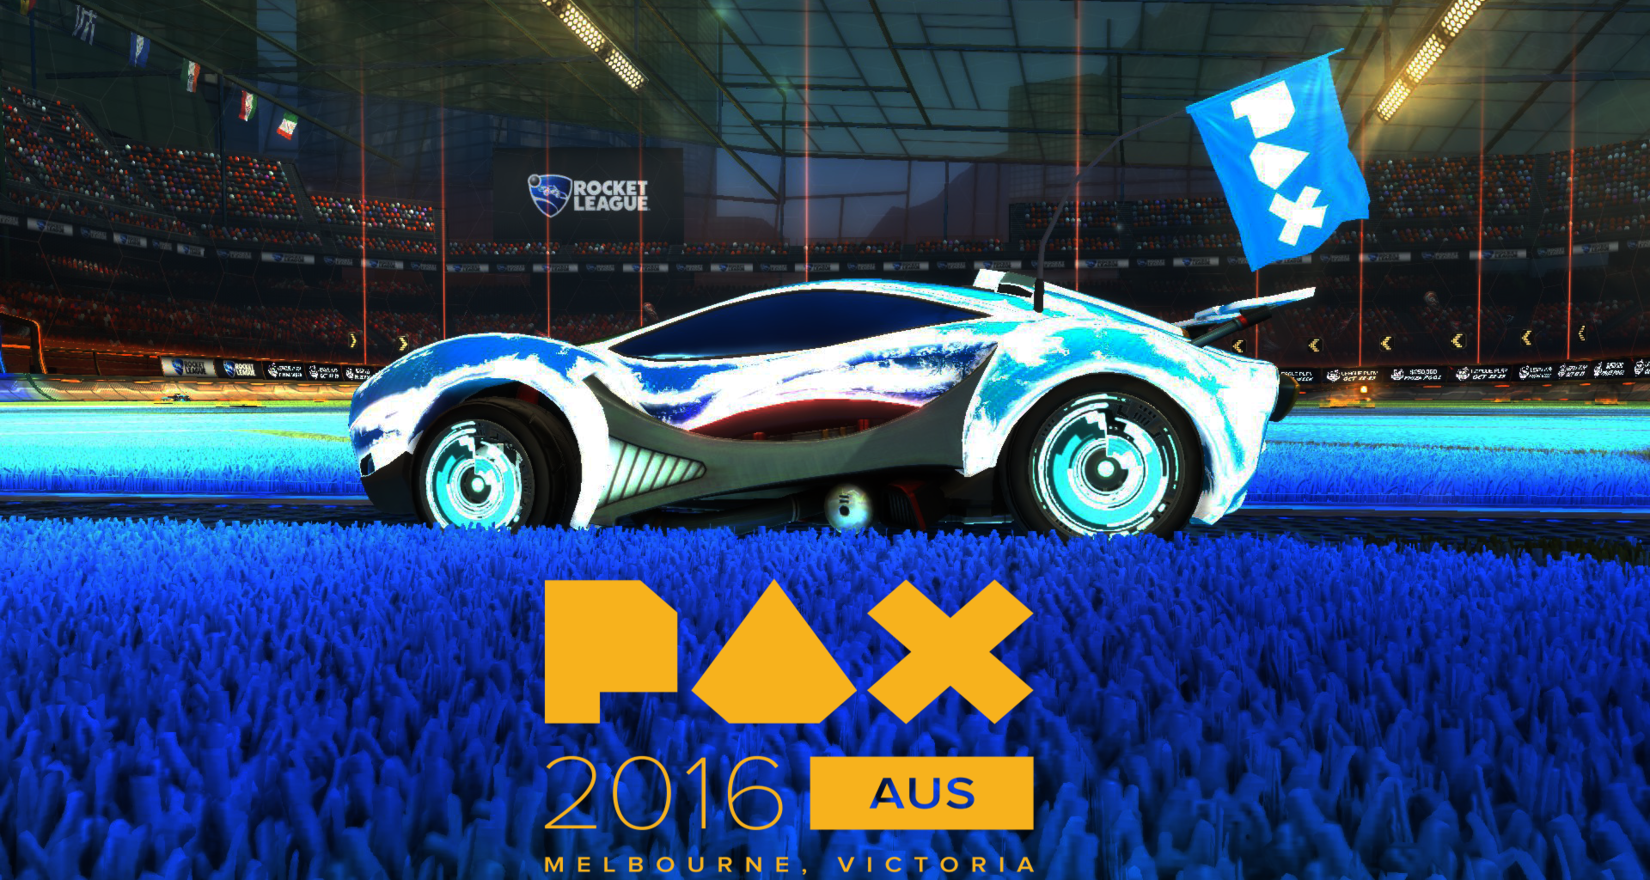 Rocket League at PAX AUS 2016 Image